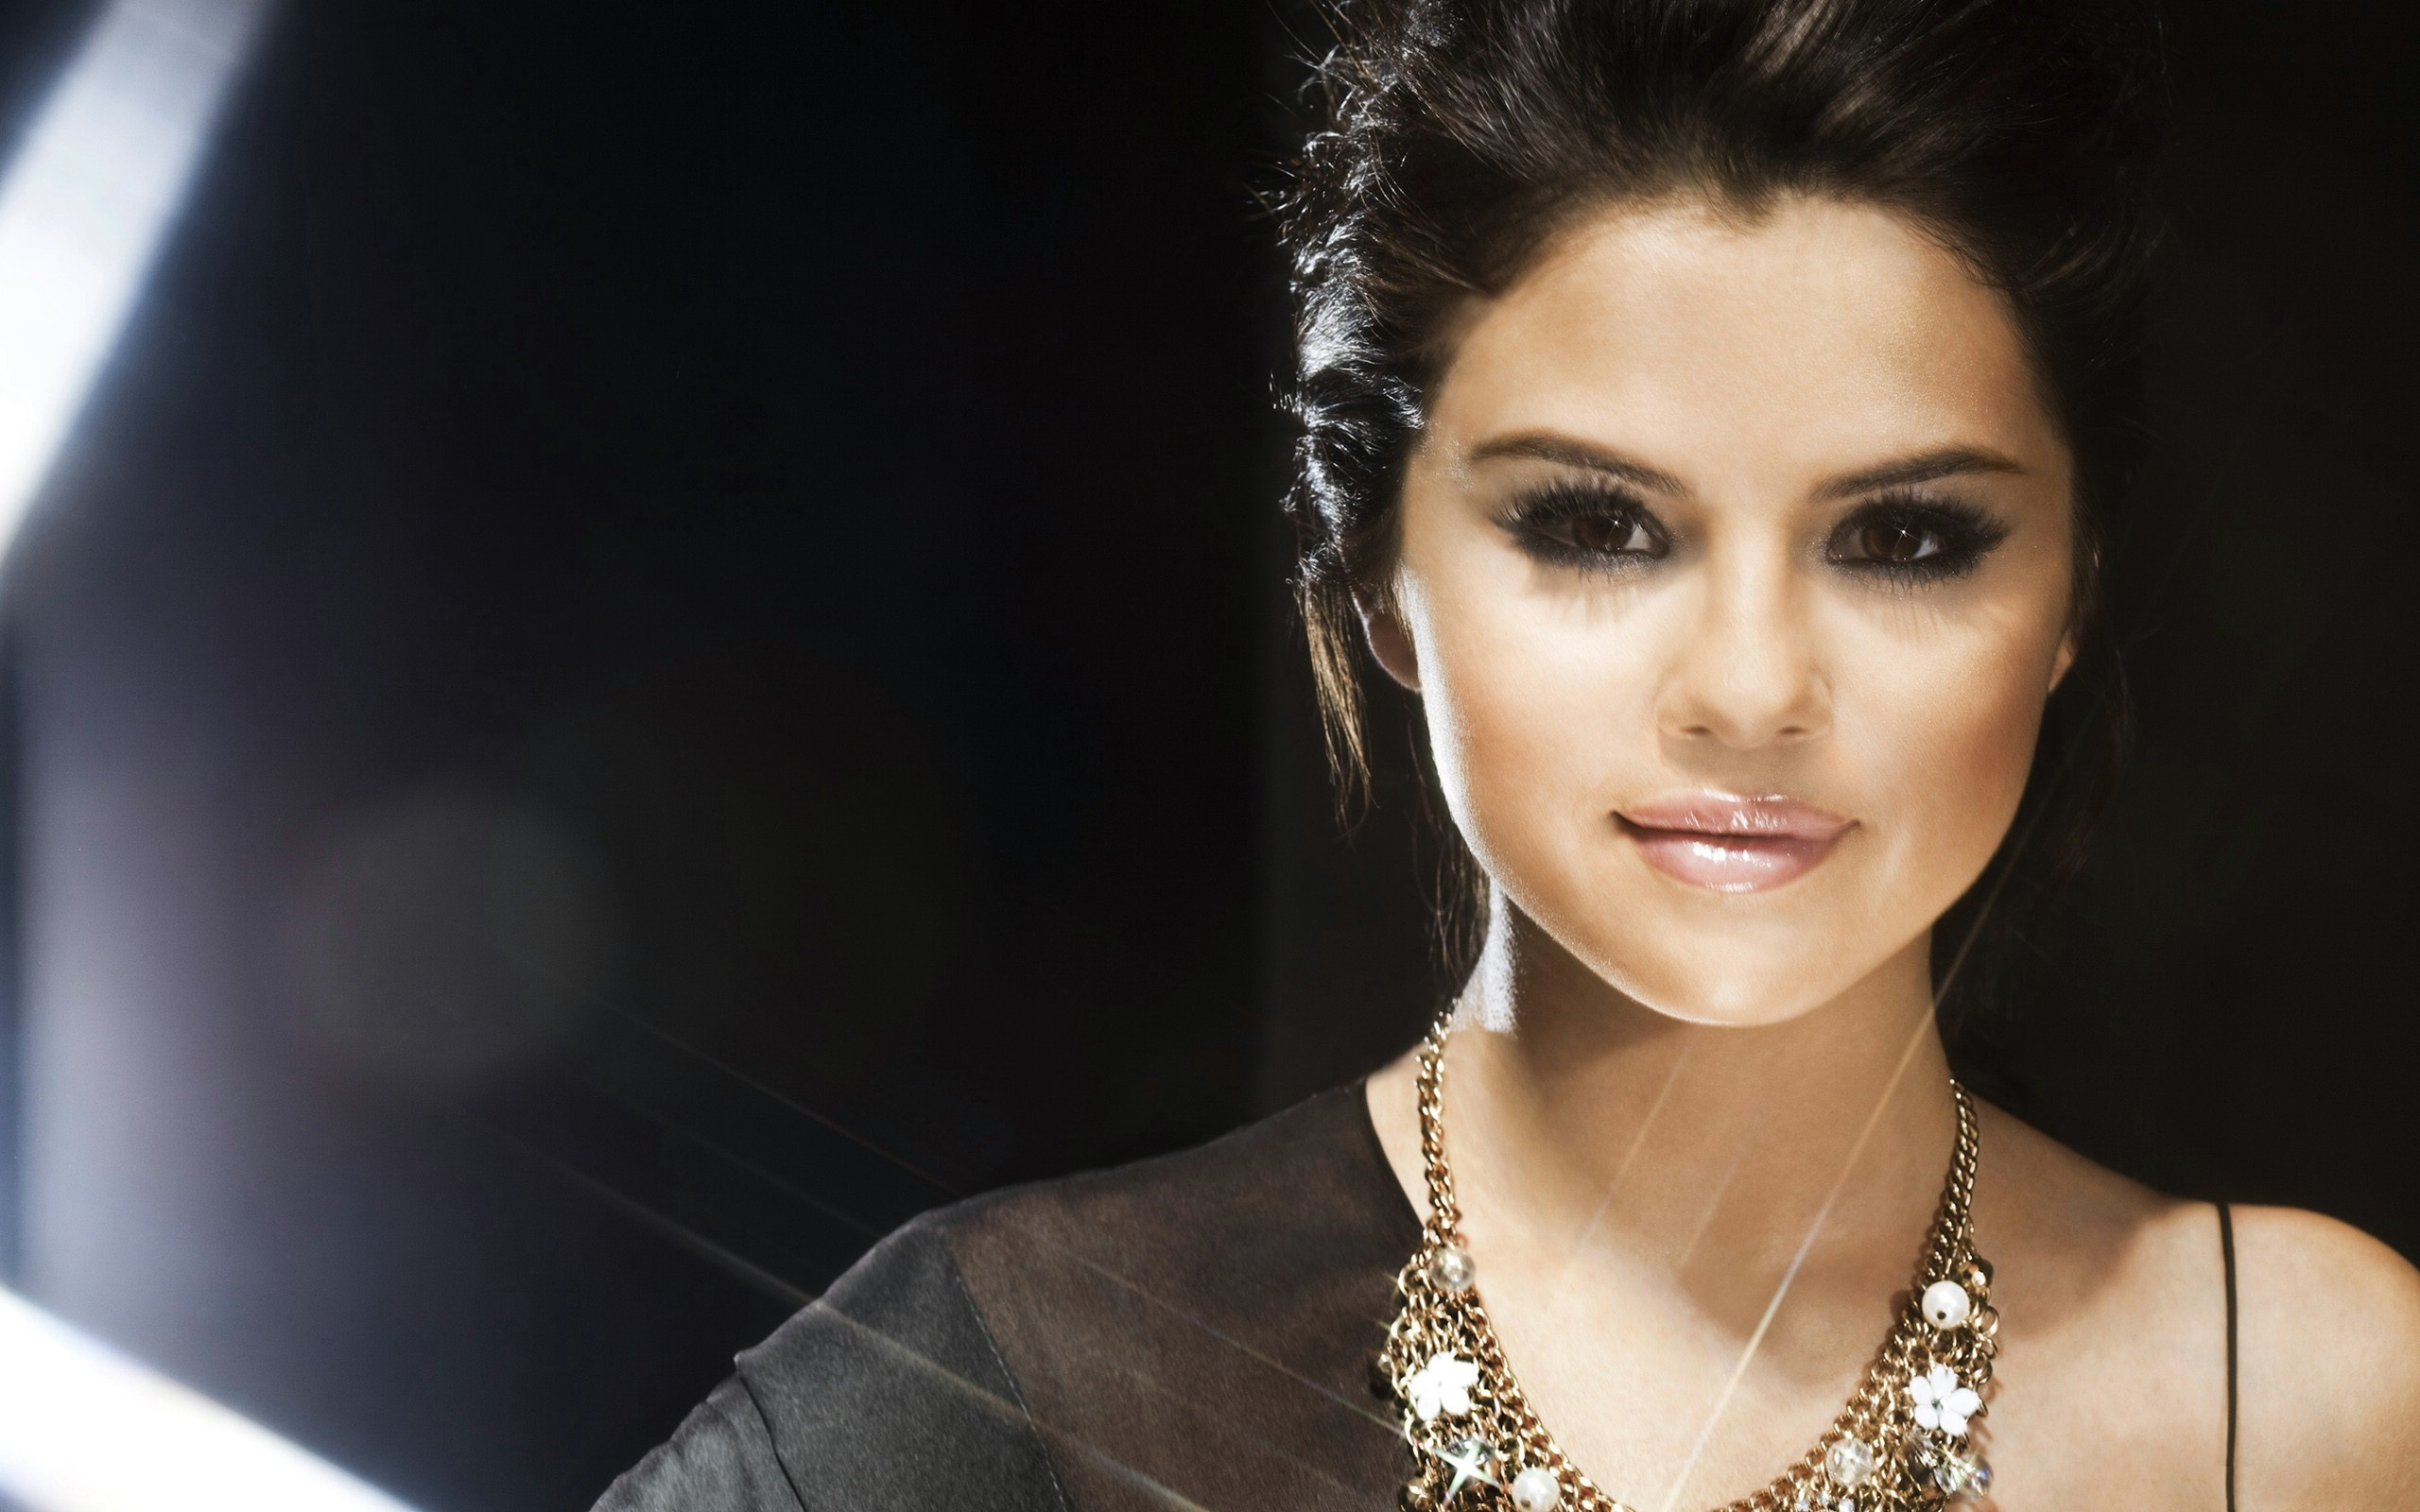 desktop selena gomez smiling face with neckles pose background computer hd free pics